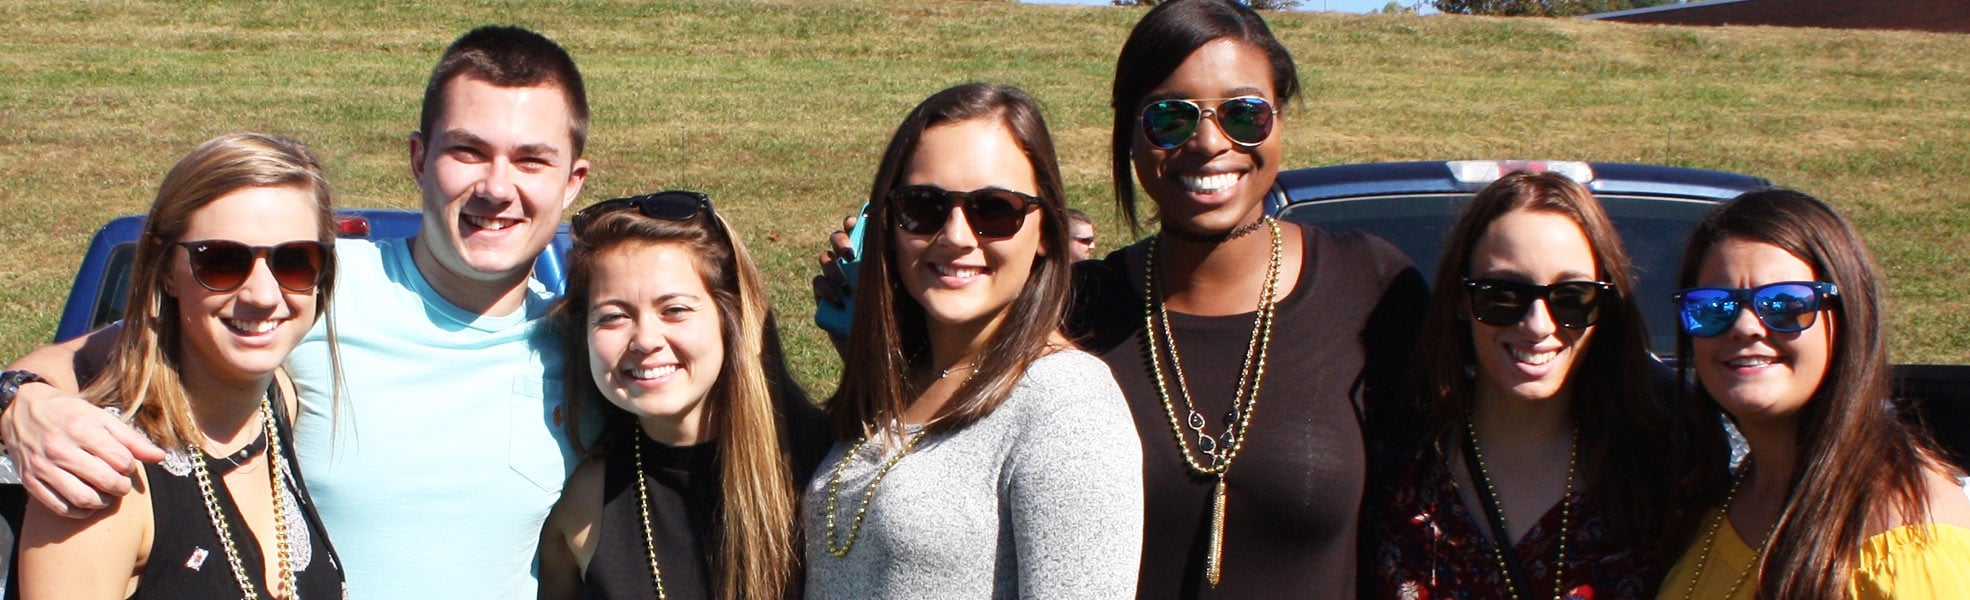 Ferrum College Alums at Homecoming